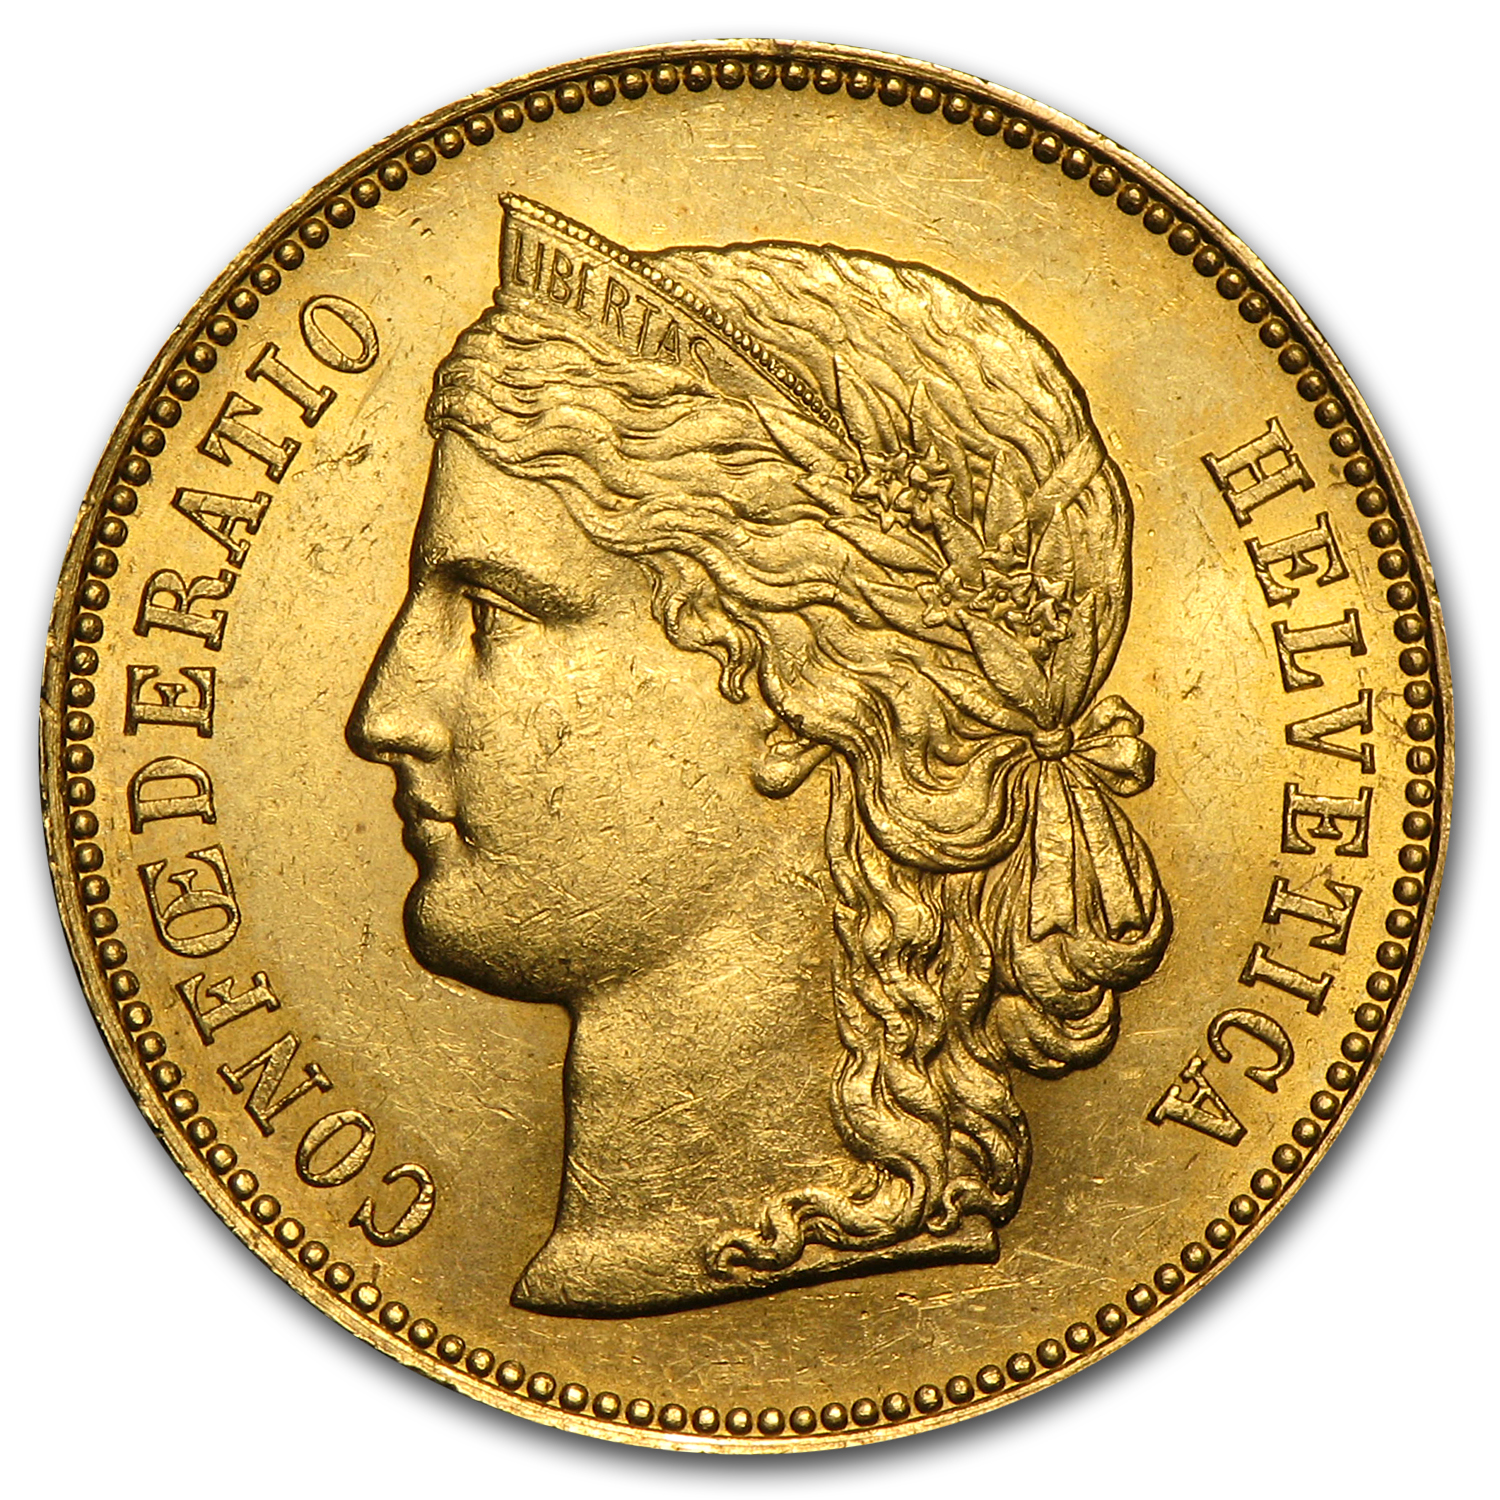 Switzerland 1890-B Gold 20 Francs (Almost Unc)